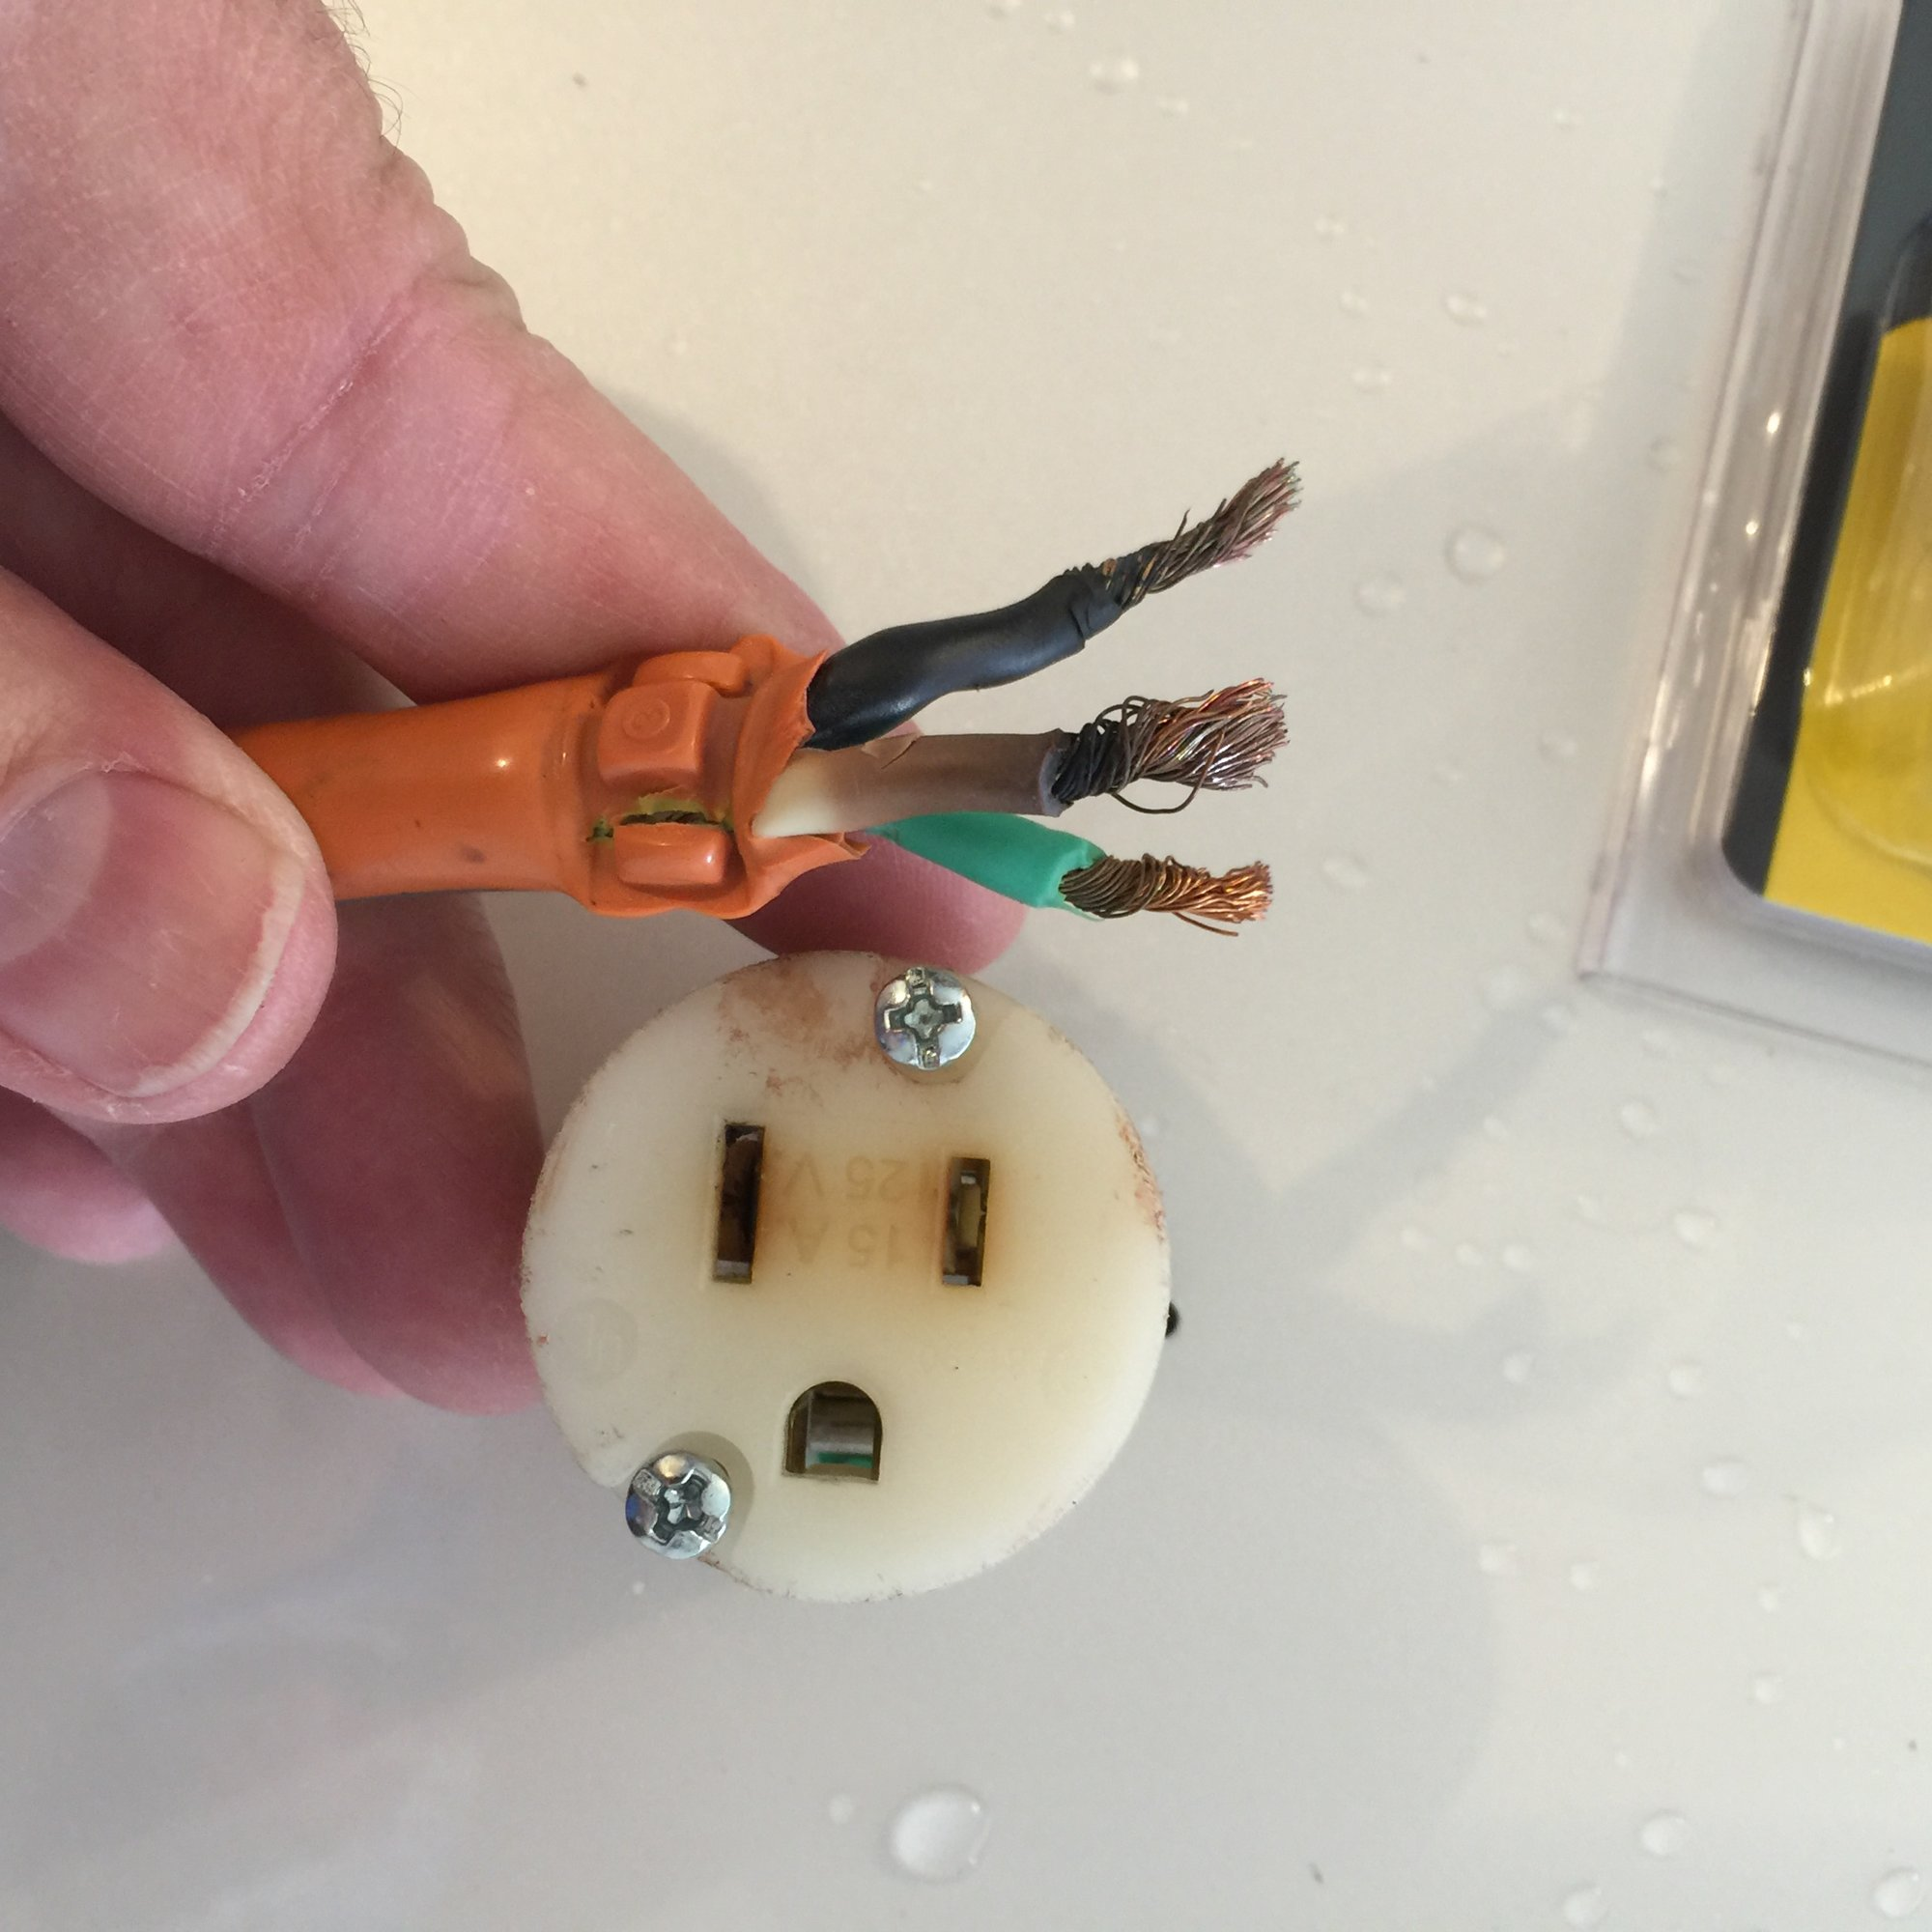 extension_cord_plug_burned.JPG